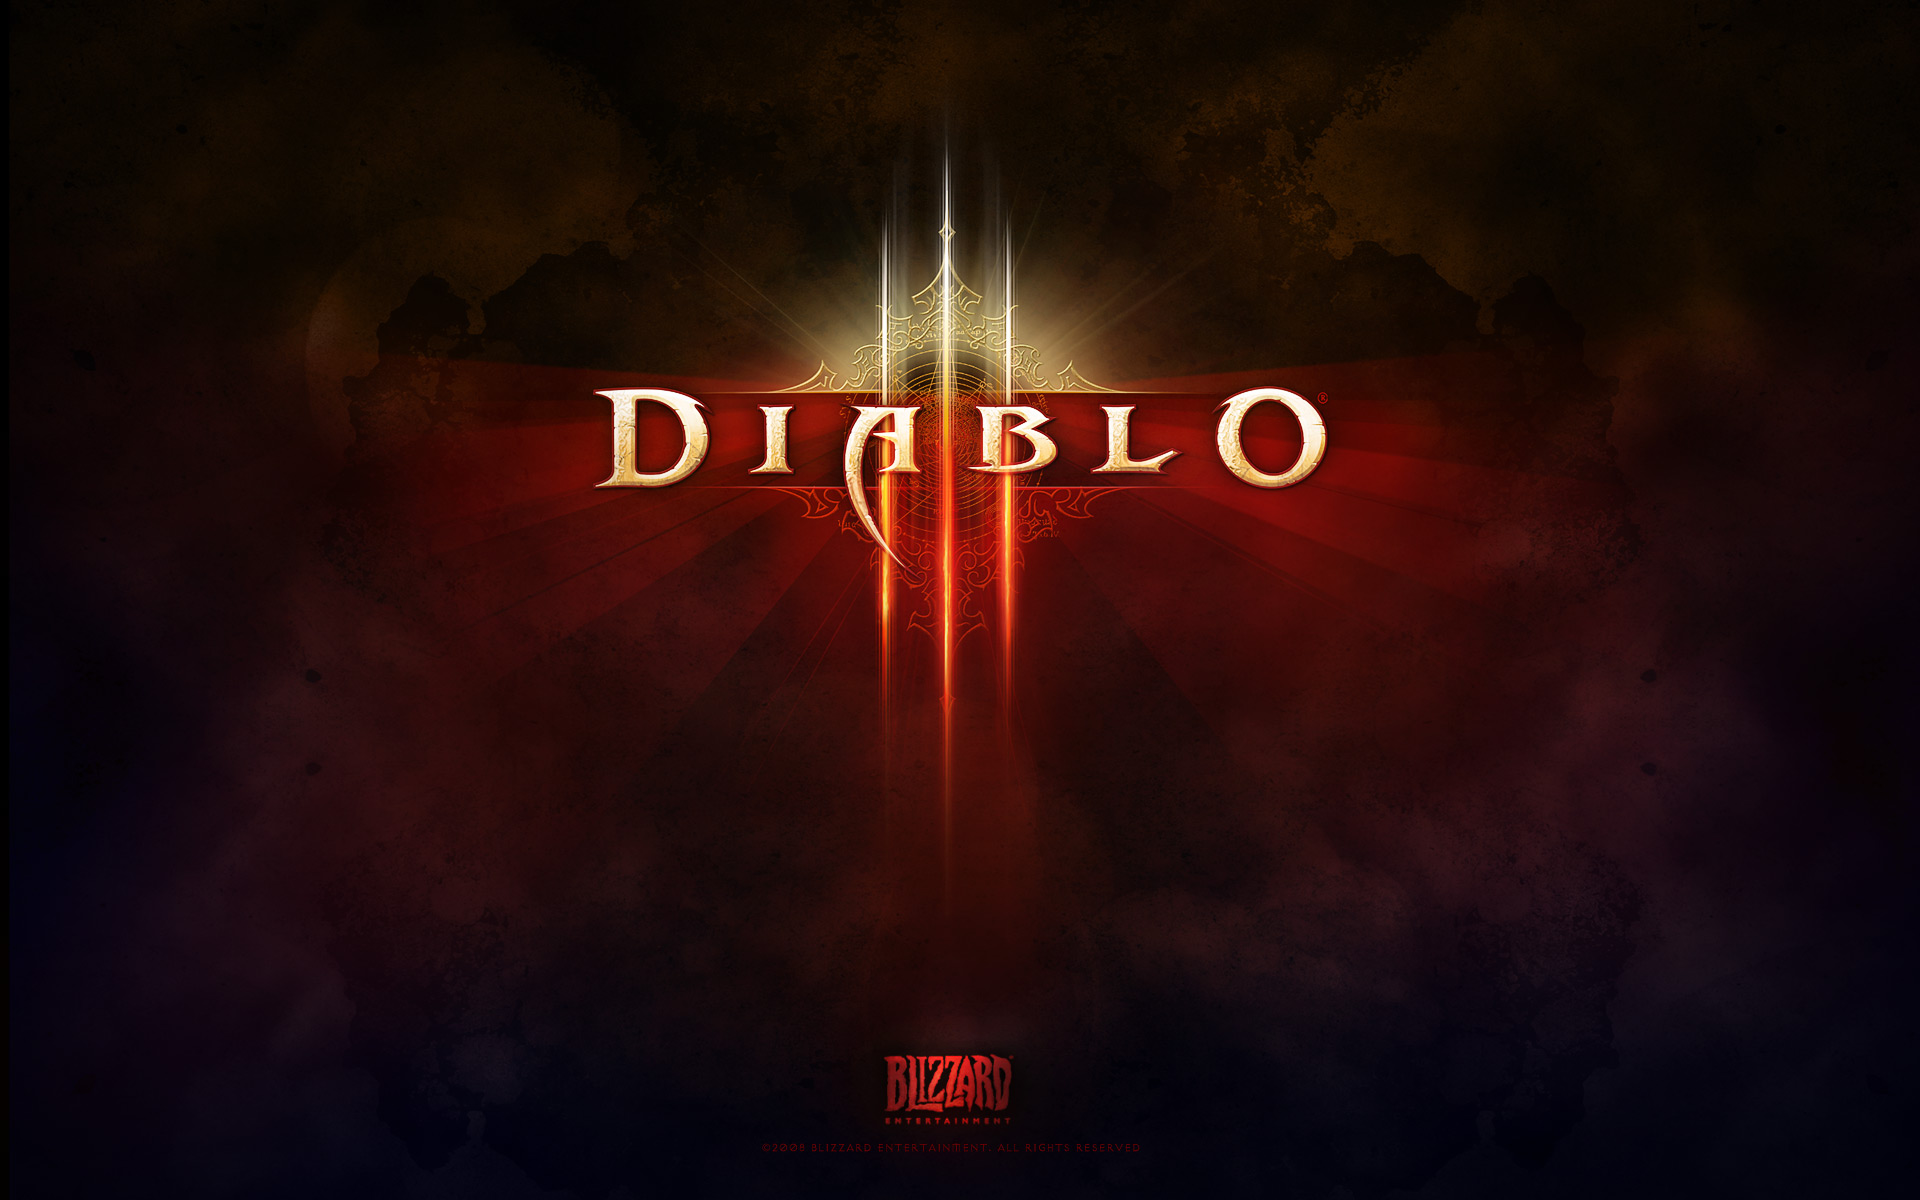 Wallpaper Diablo 3 LOGO Jeux video